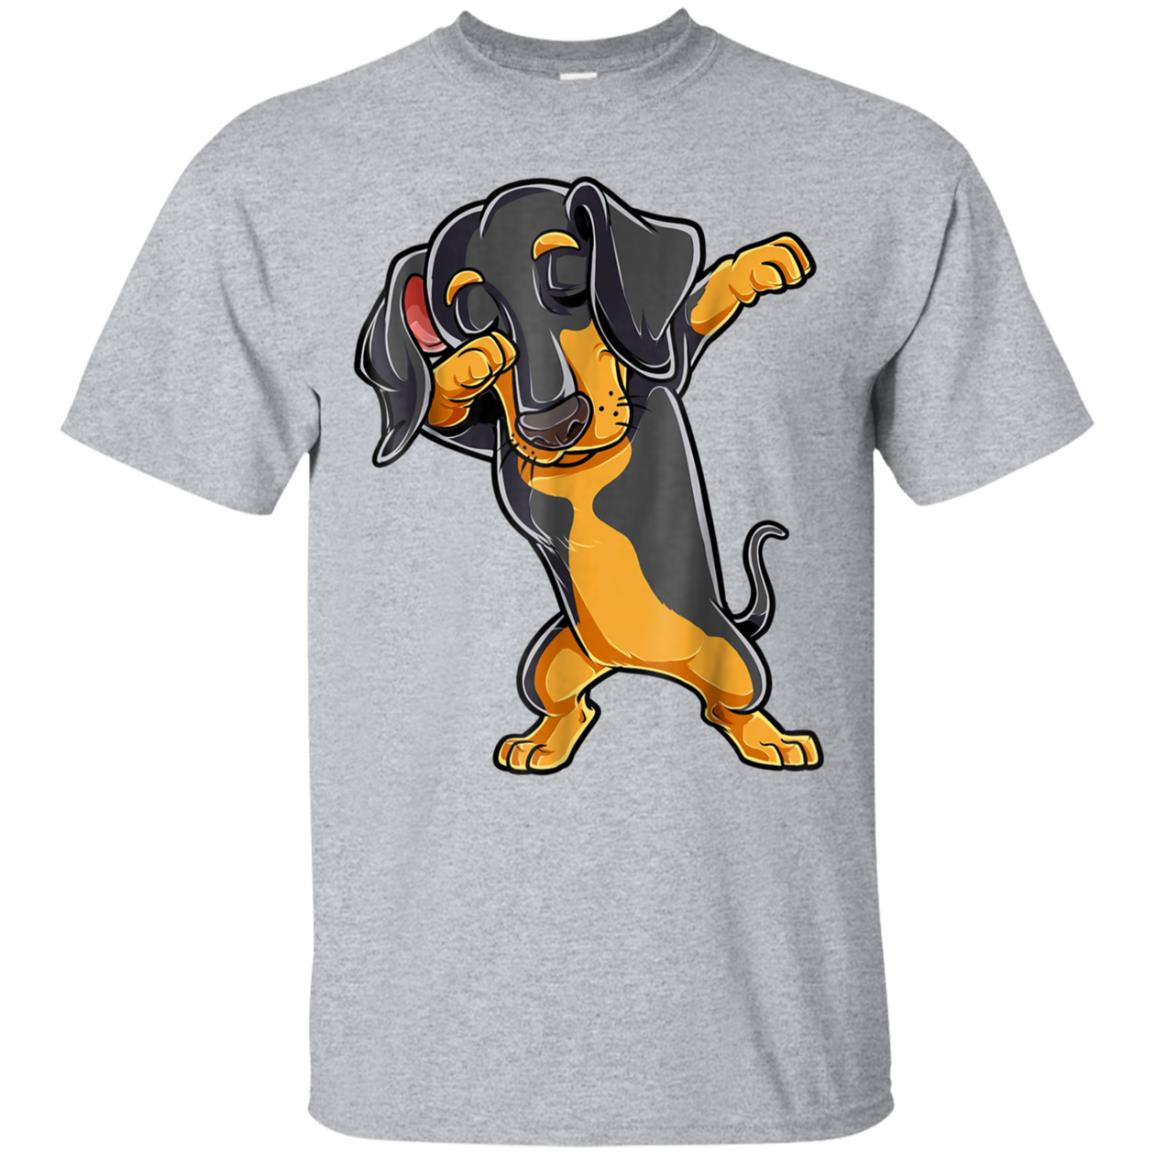 Dabbing Dachshund T shirt Boys Dab Dance Puppy Lovers Gifts 99promocode